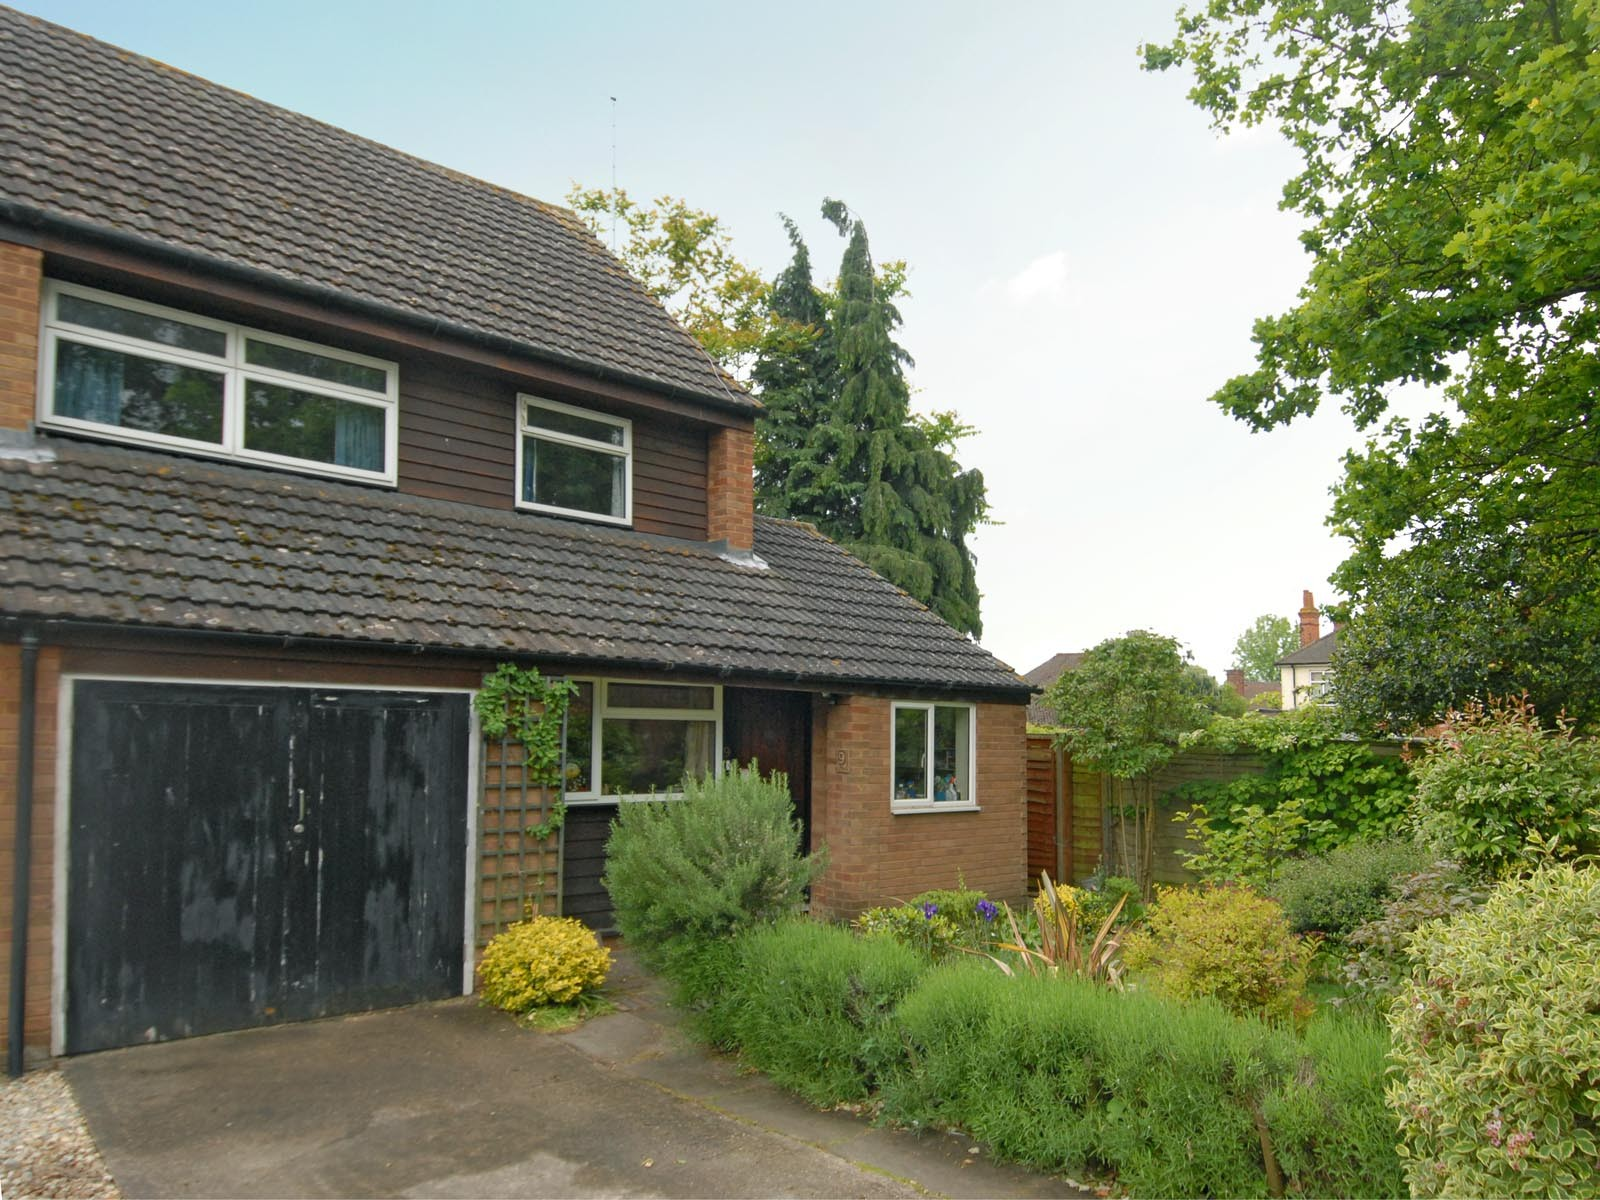 Nuthatch Drive, Earley, Reading, RG6 5DP